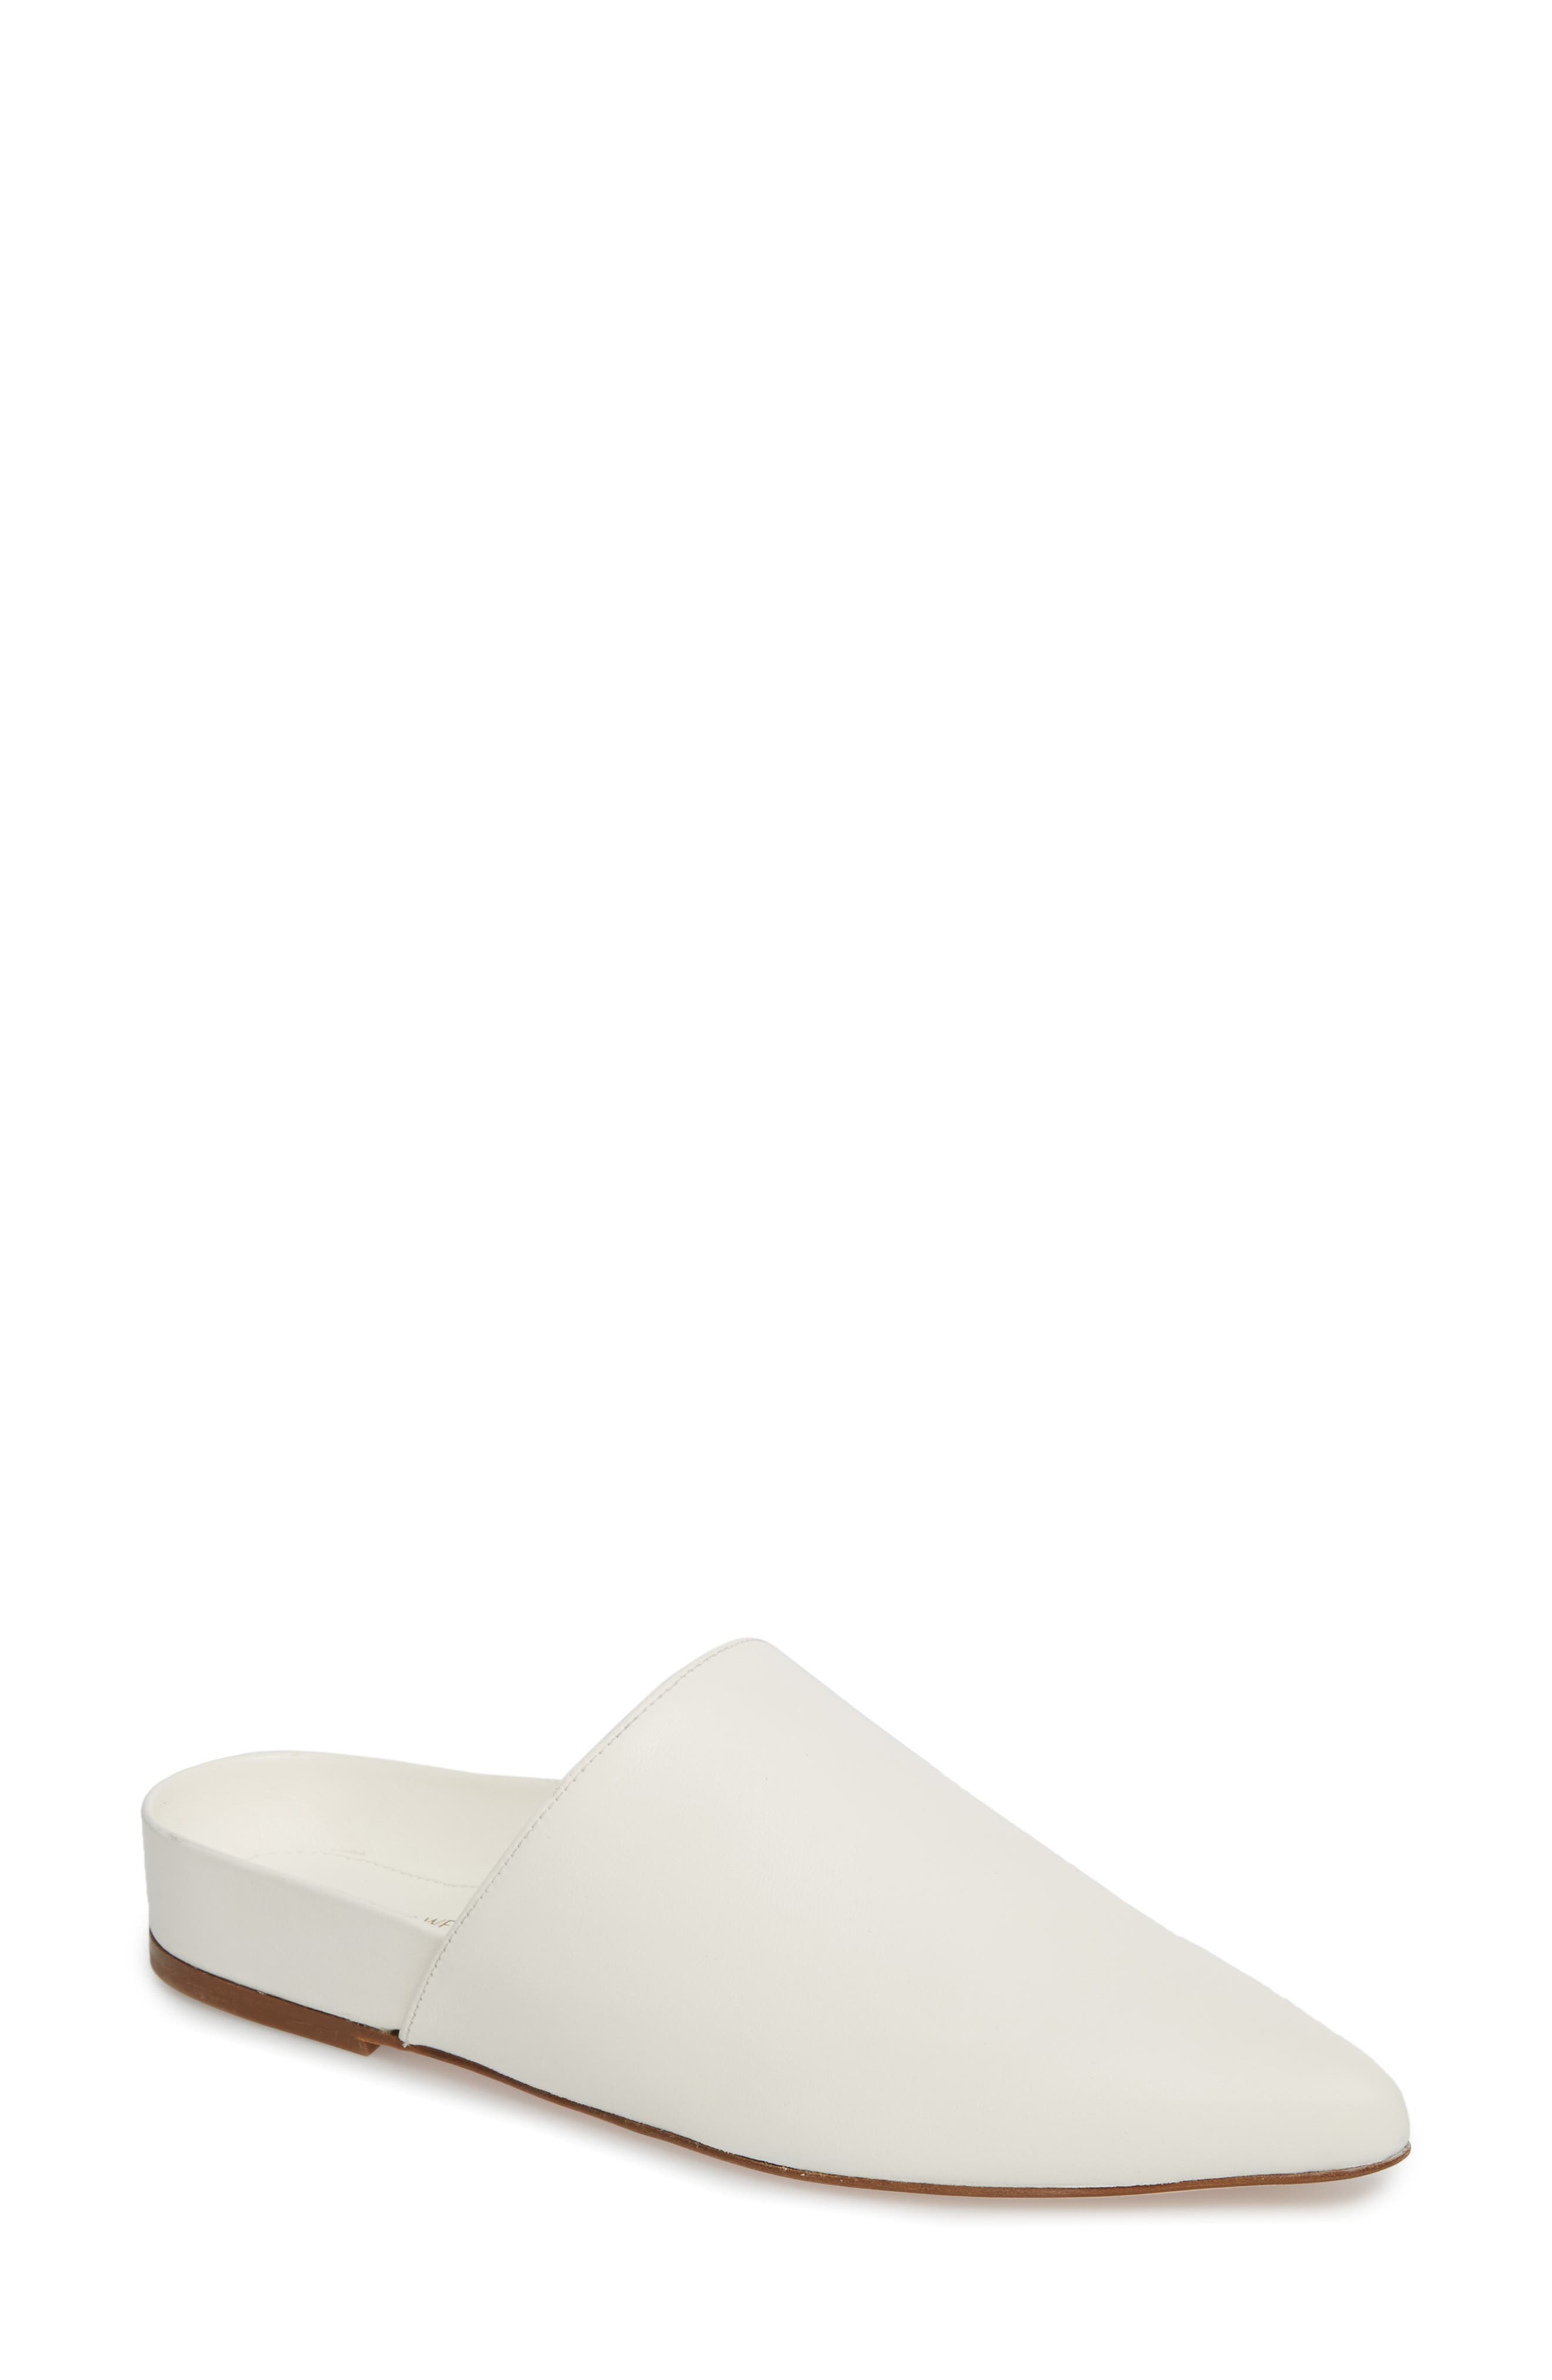 Studio Pointy Toe Flat Mule,                         Main,                         color, White Smooth